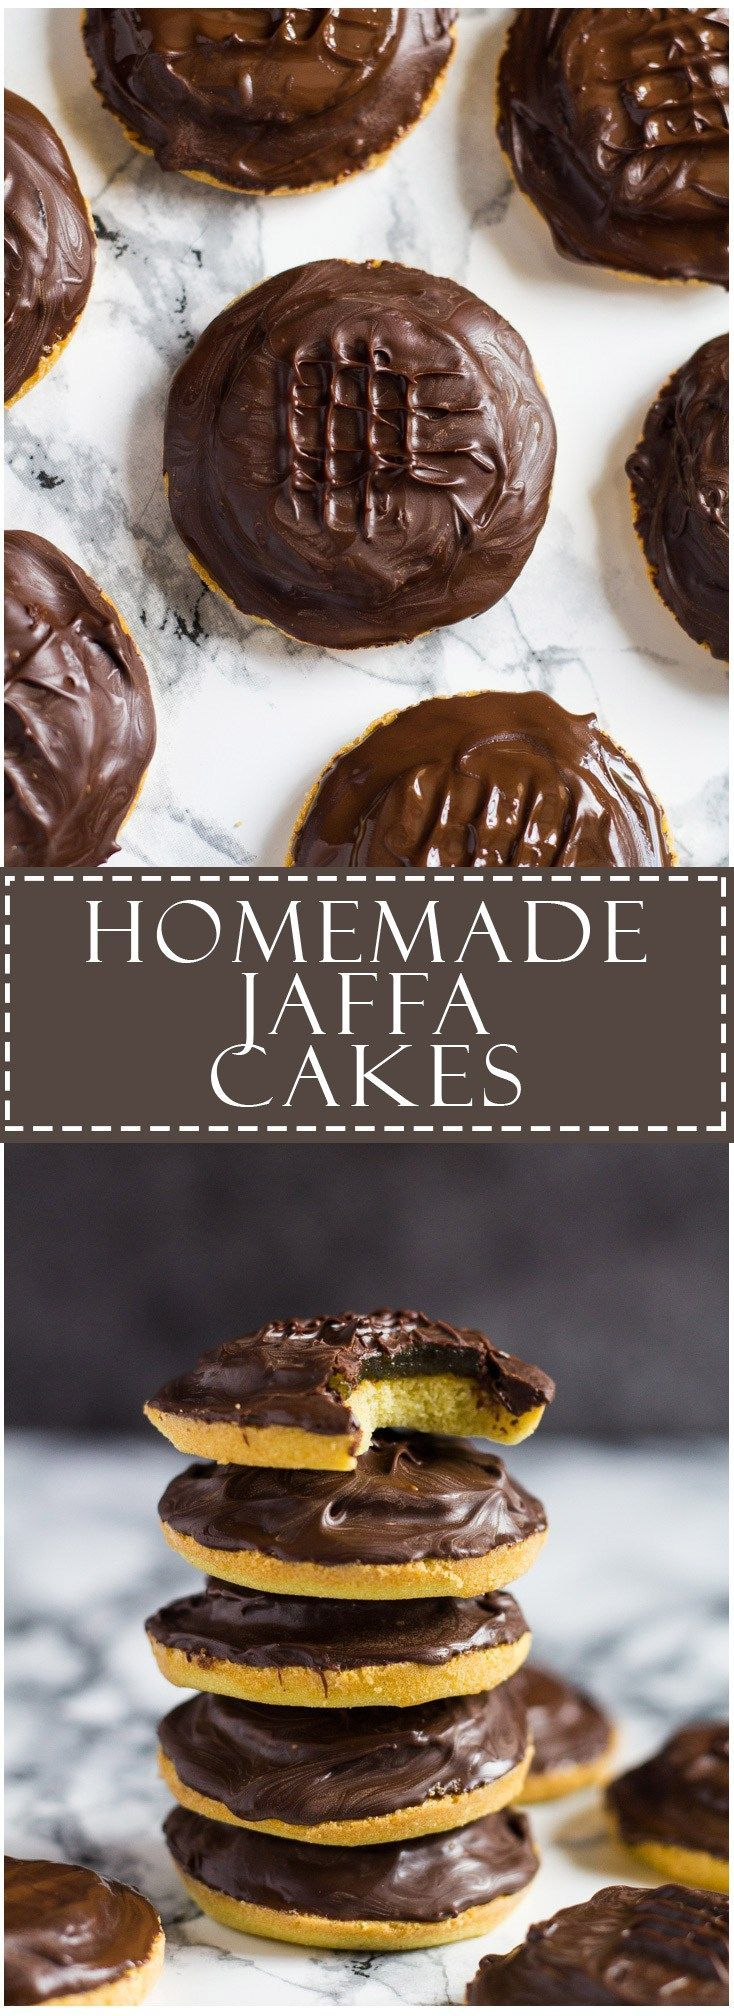 Homemade Jaffa Cakes | Marsha's Baking Addiction